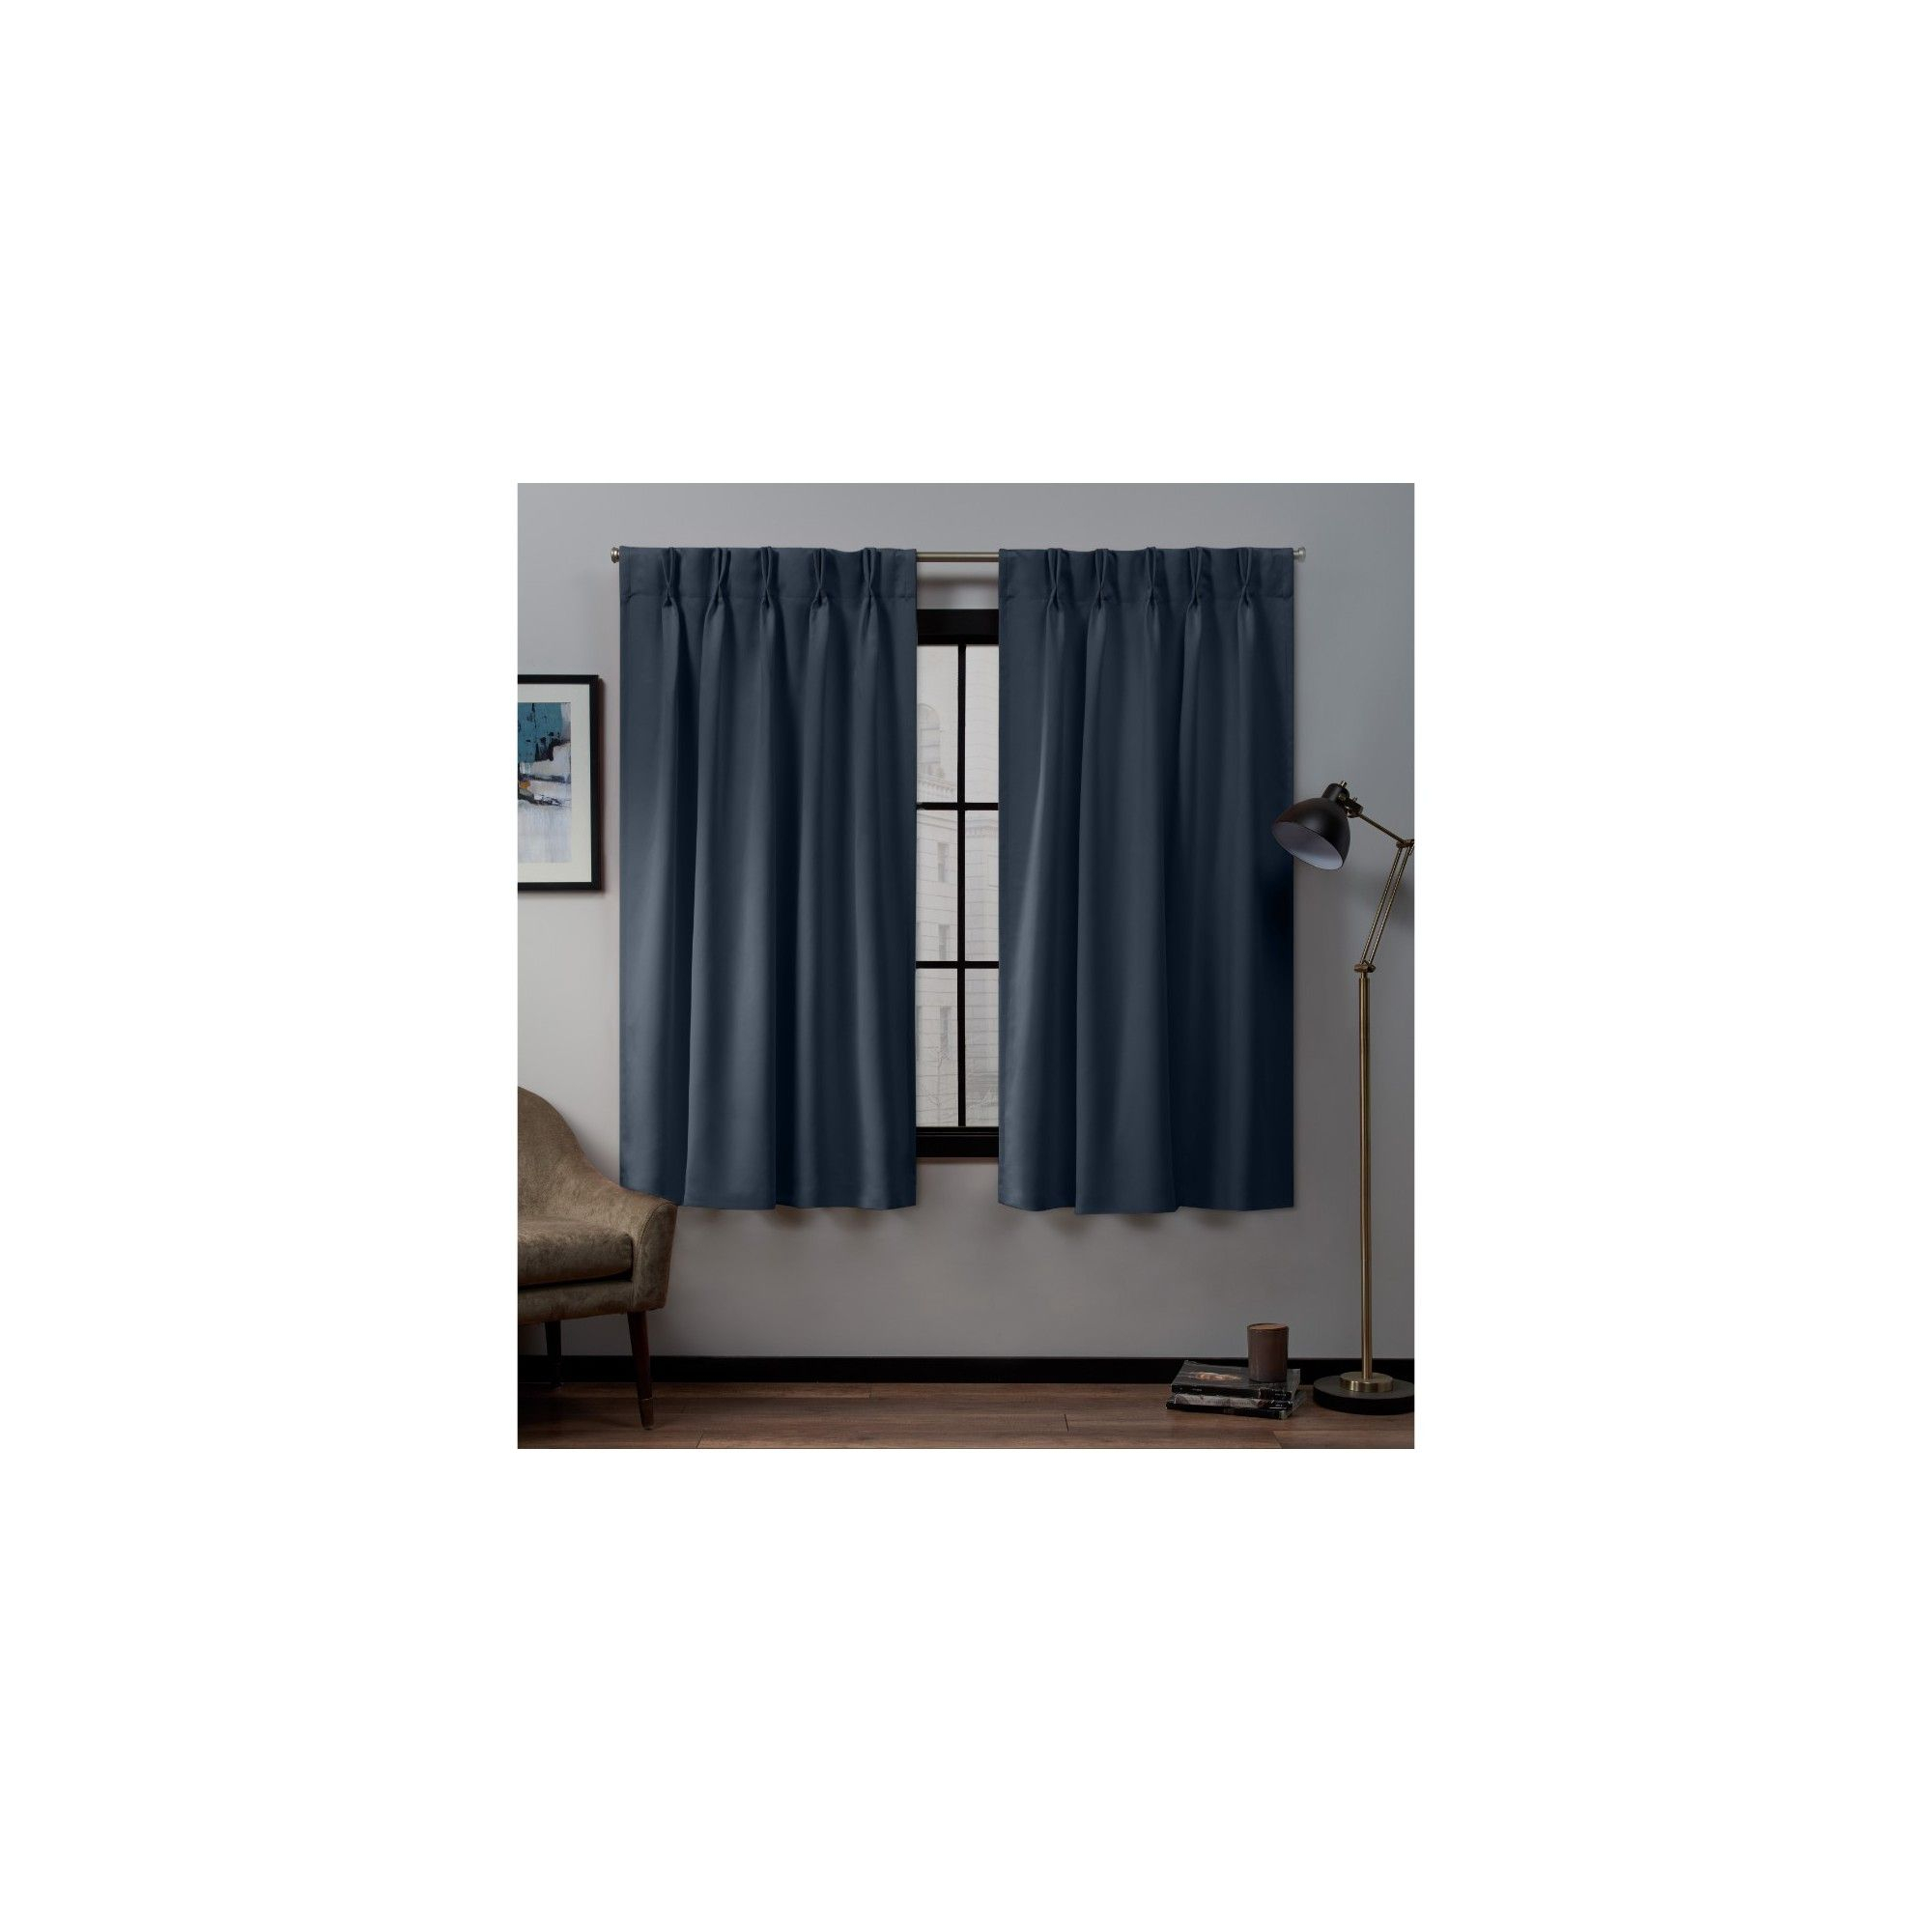 "30""x96"" Sateen Twill Woven Blackout Pinch Pleat Window Pertaining To Sateen Woven Blackout Curtain Panel Pairs With Pinch Pleat Top (View 2 of 20)"